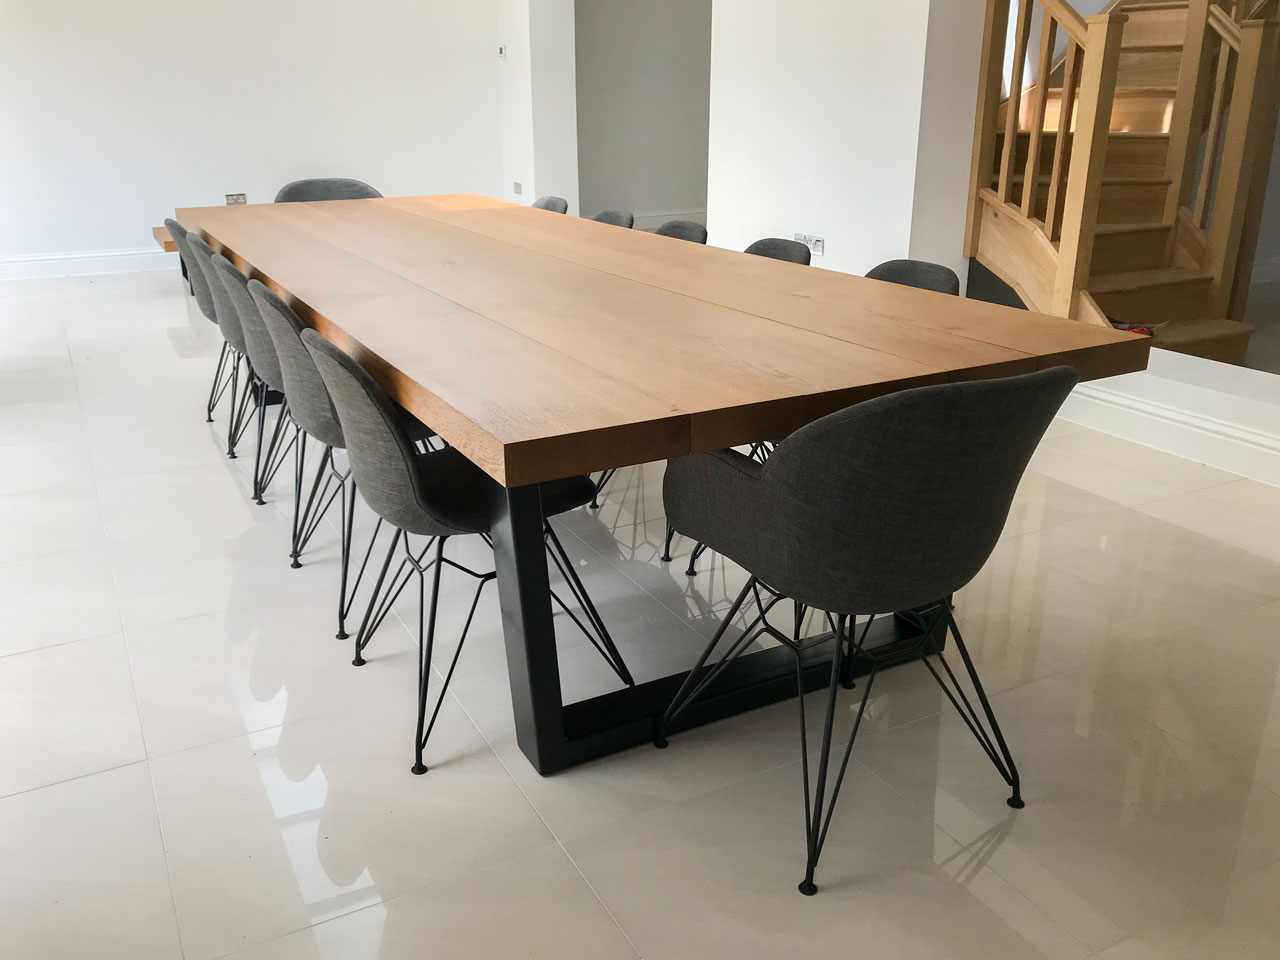 12 Seater Dining Table and Chairs  Abacus Tables